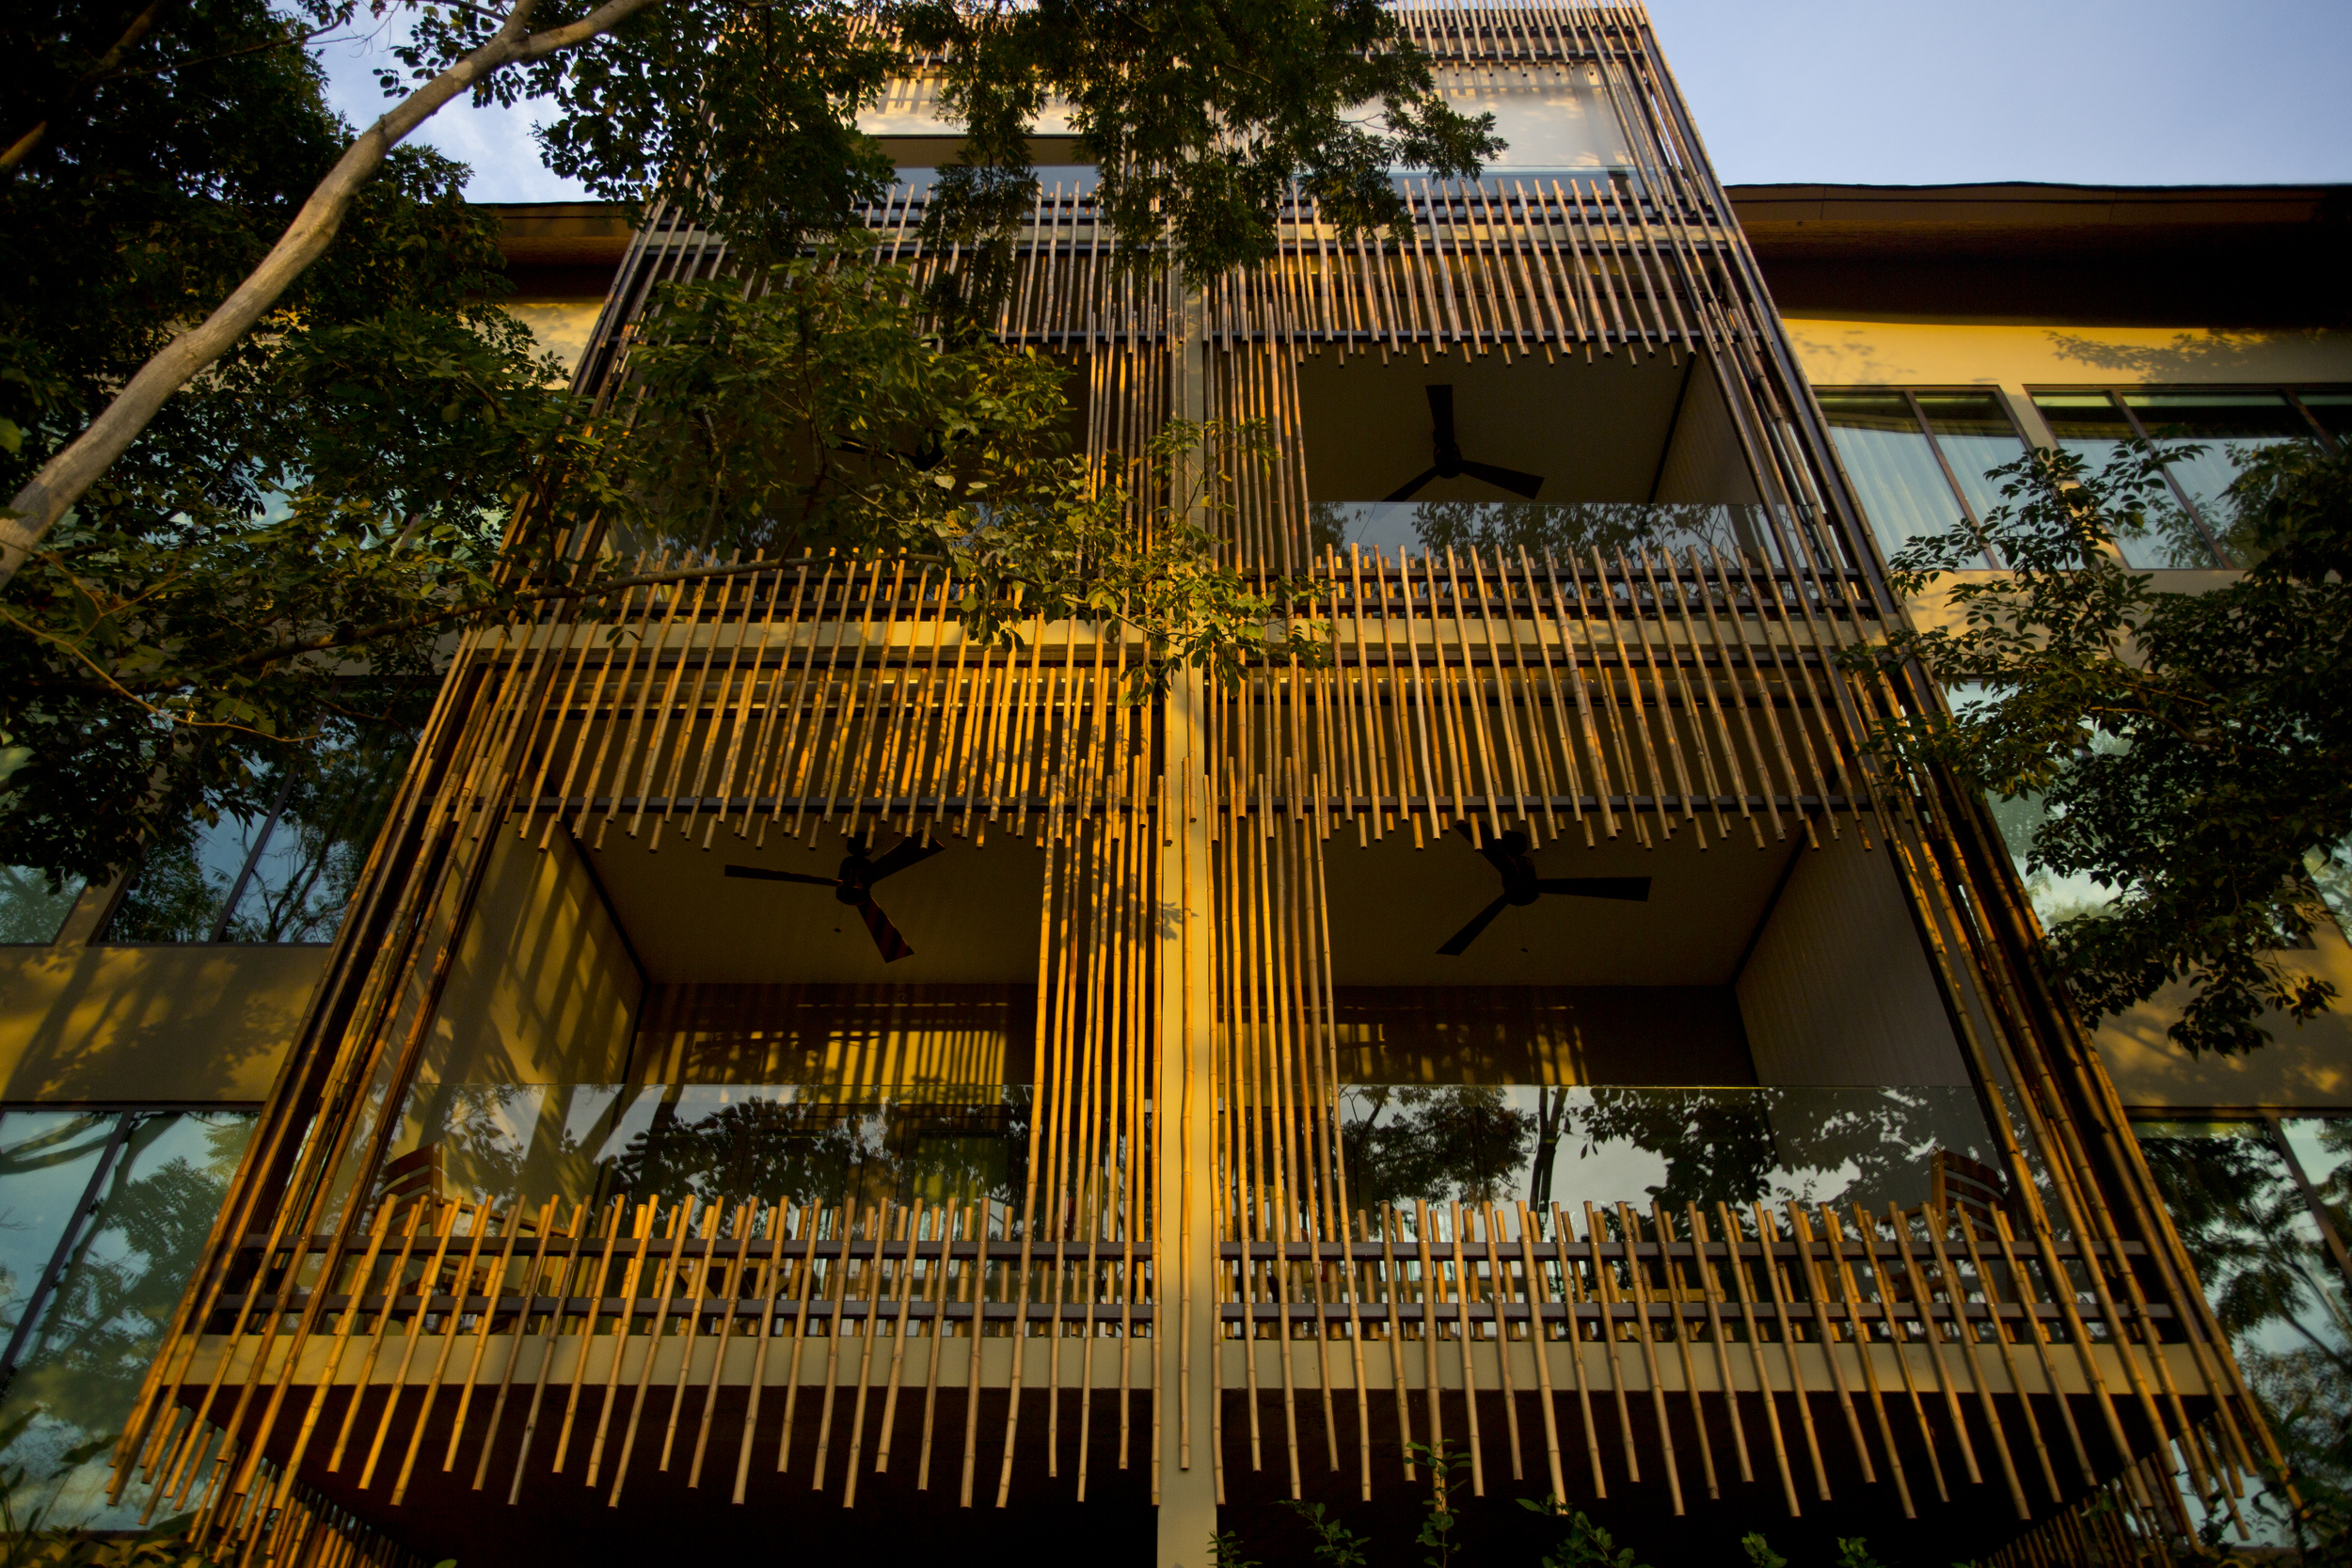 South_America_Costa_Rica_Andaz_Building.jpg